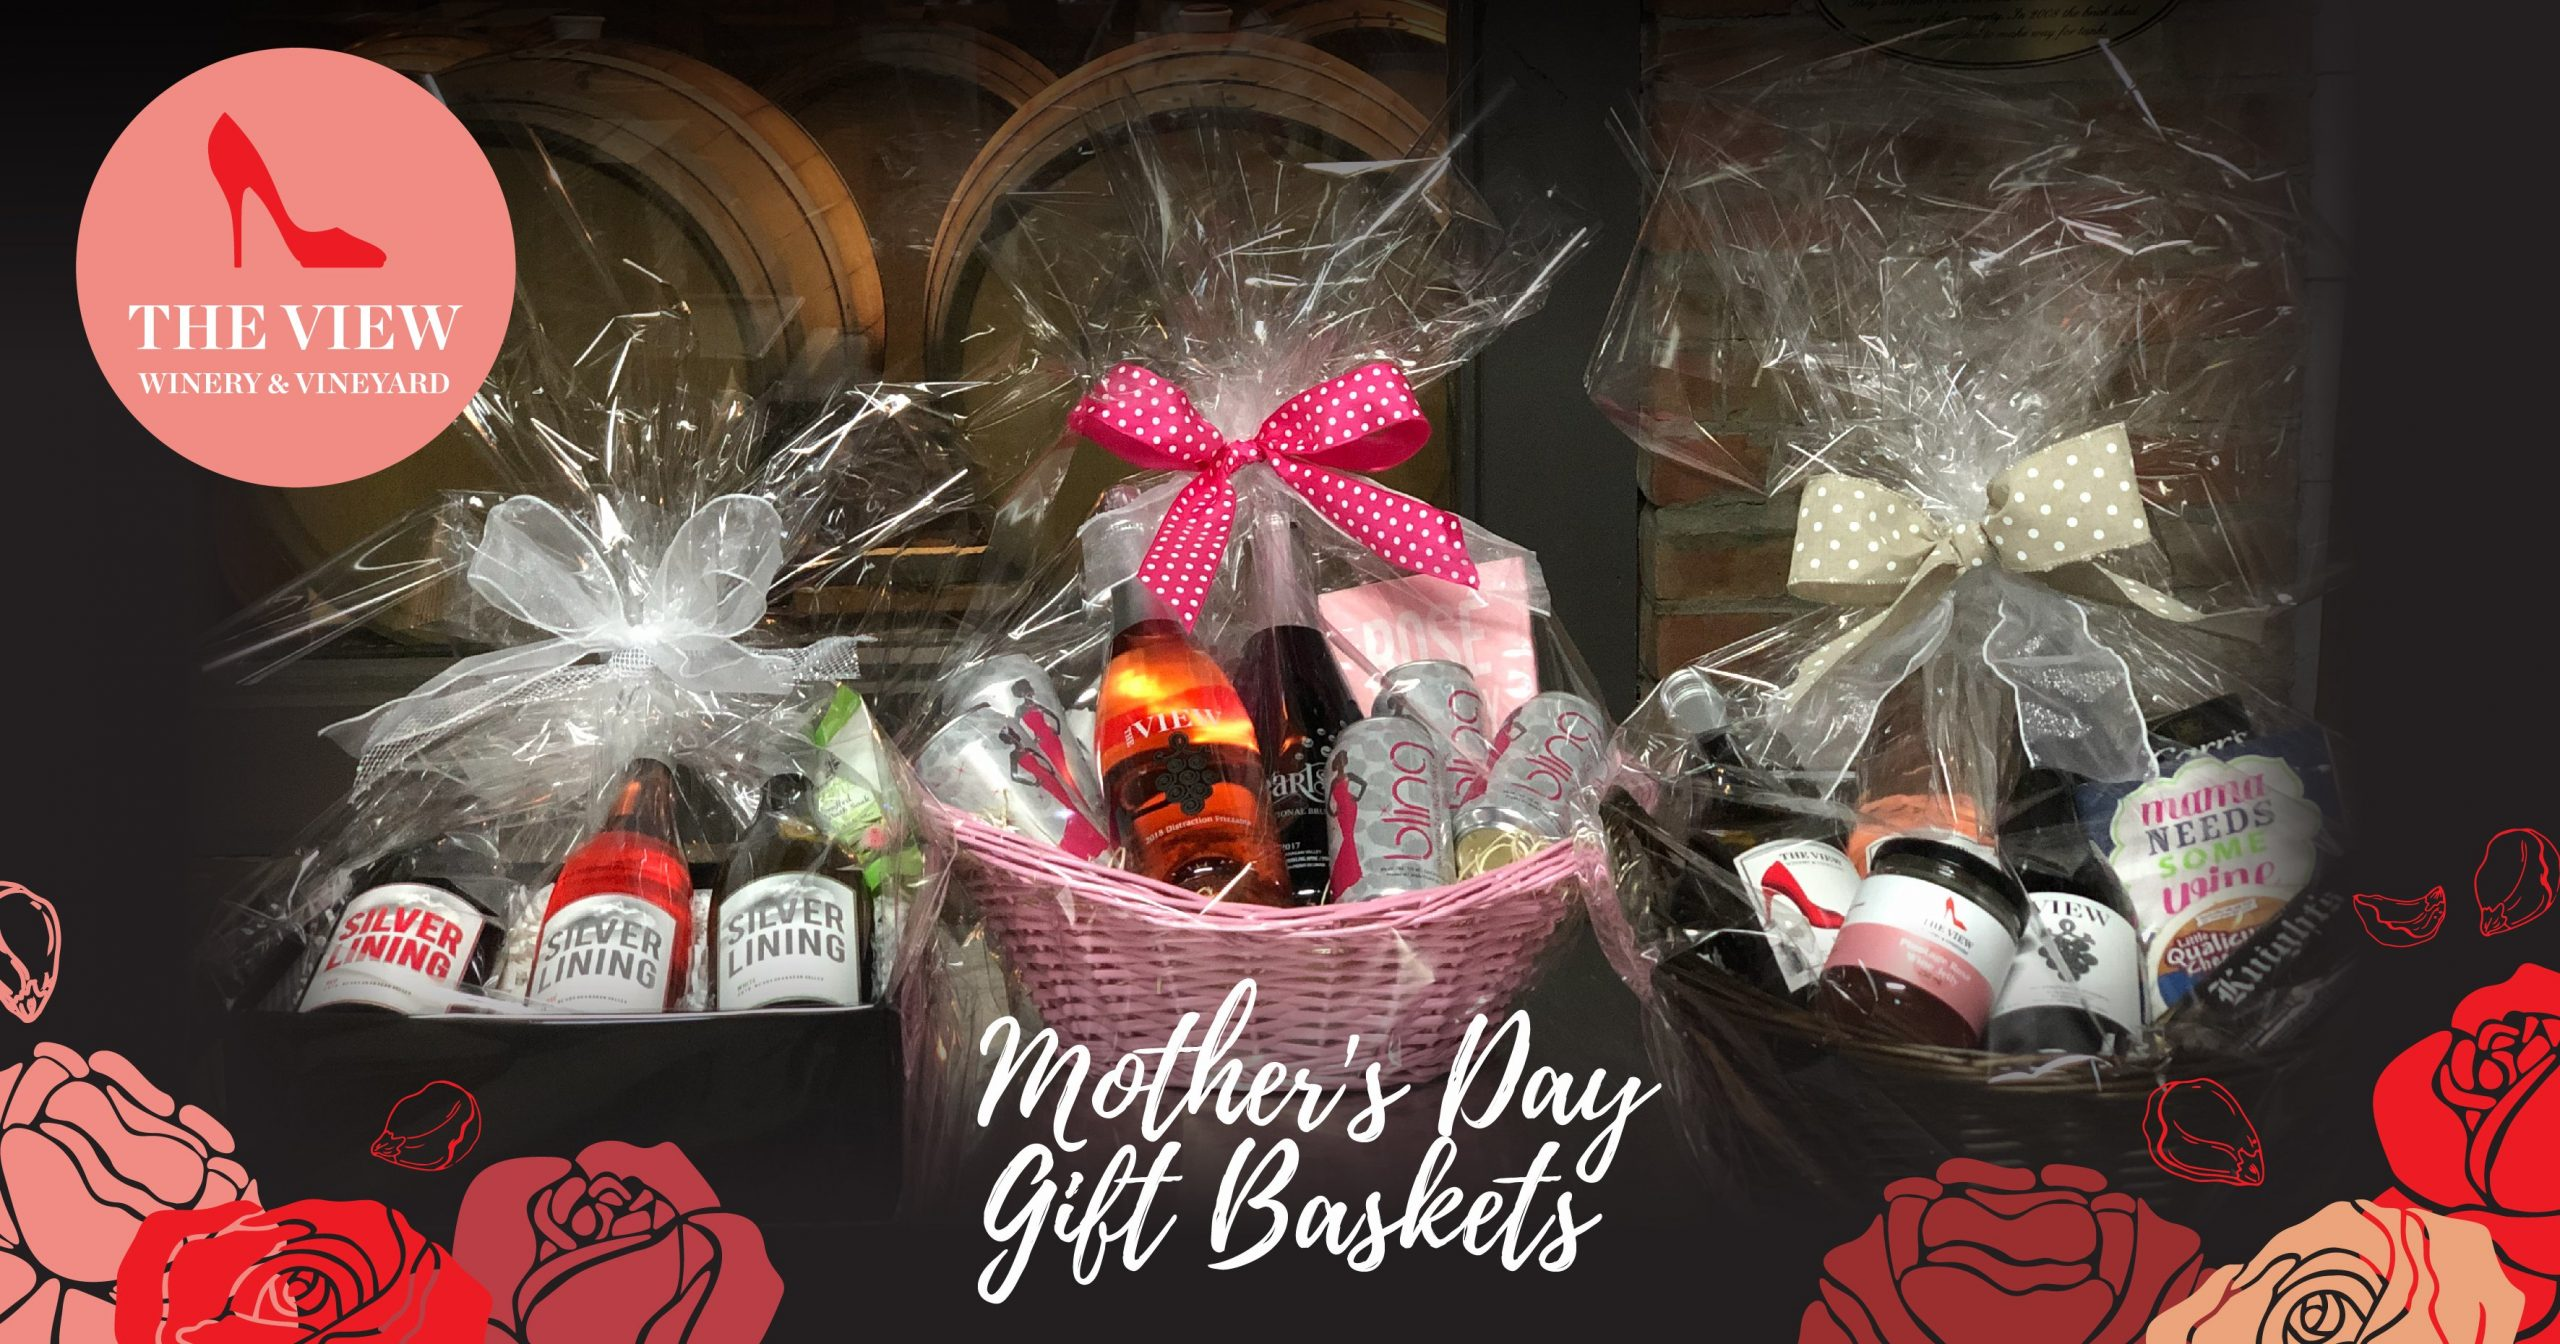 Which Of These 3 Wine-lovers Gift Baskets Would Your Mom Like Best On Mother's Day? photo